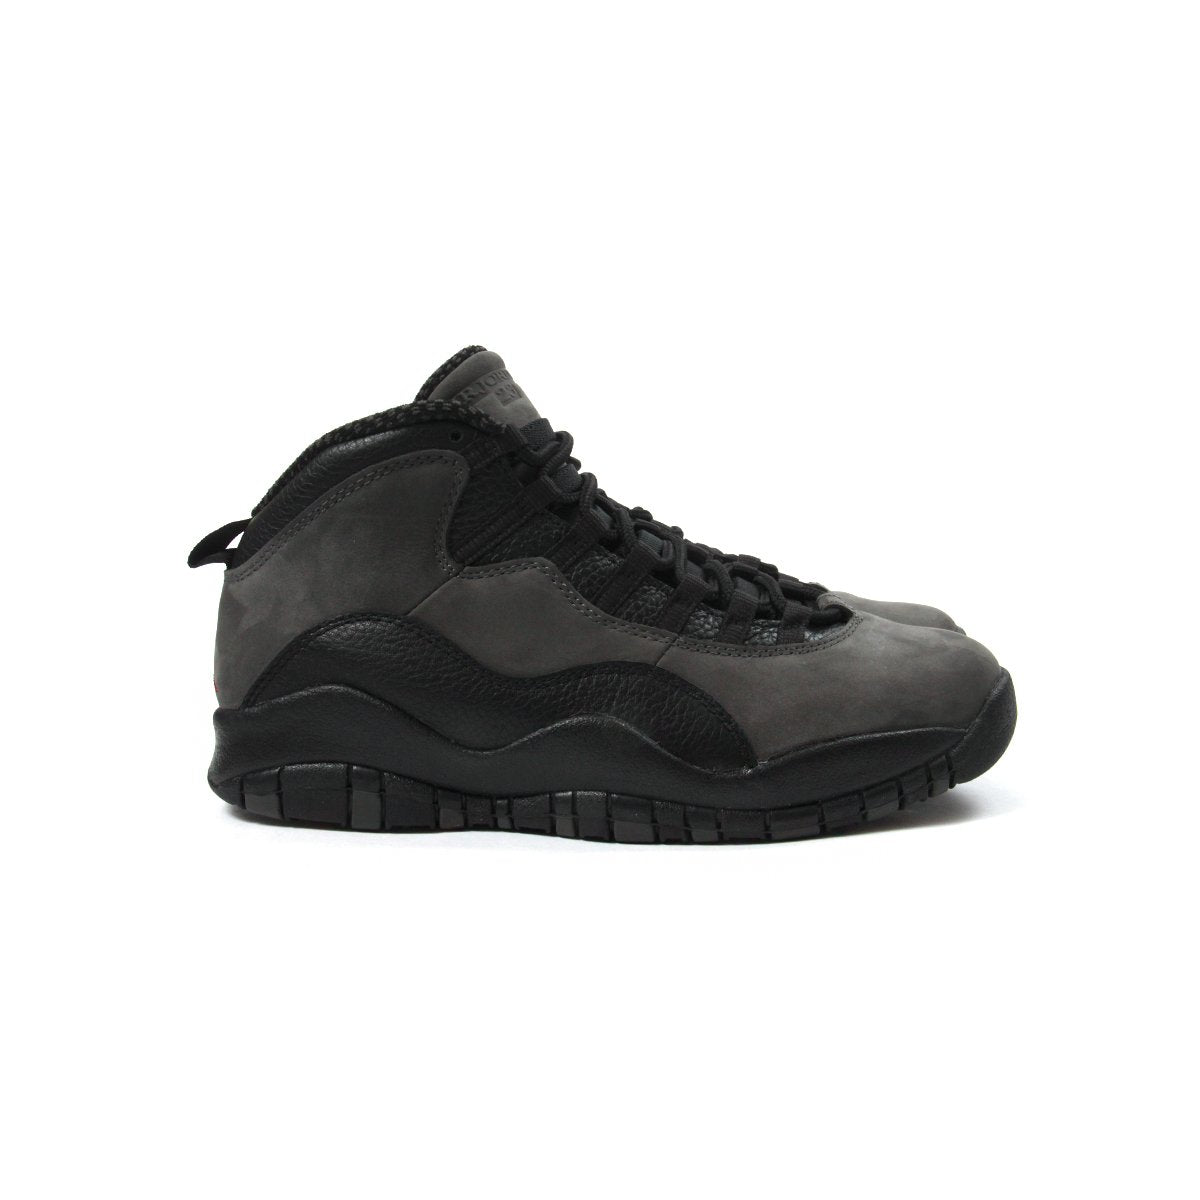 e211d883e9 ConceptsIntl | Nike Air Jordan 10 Retro (Dark Shadow/True Red-Black)